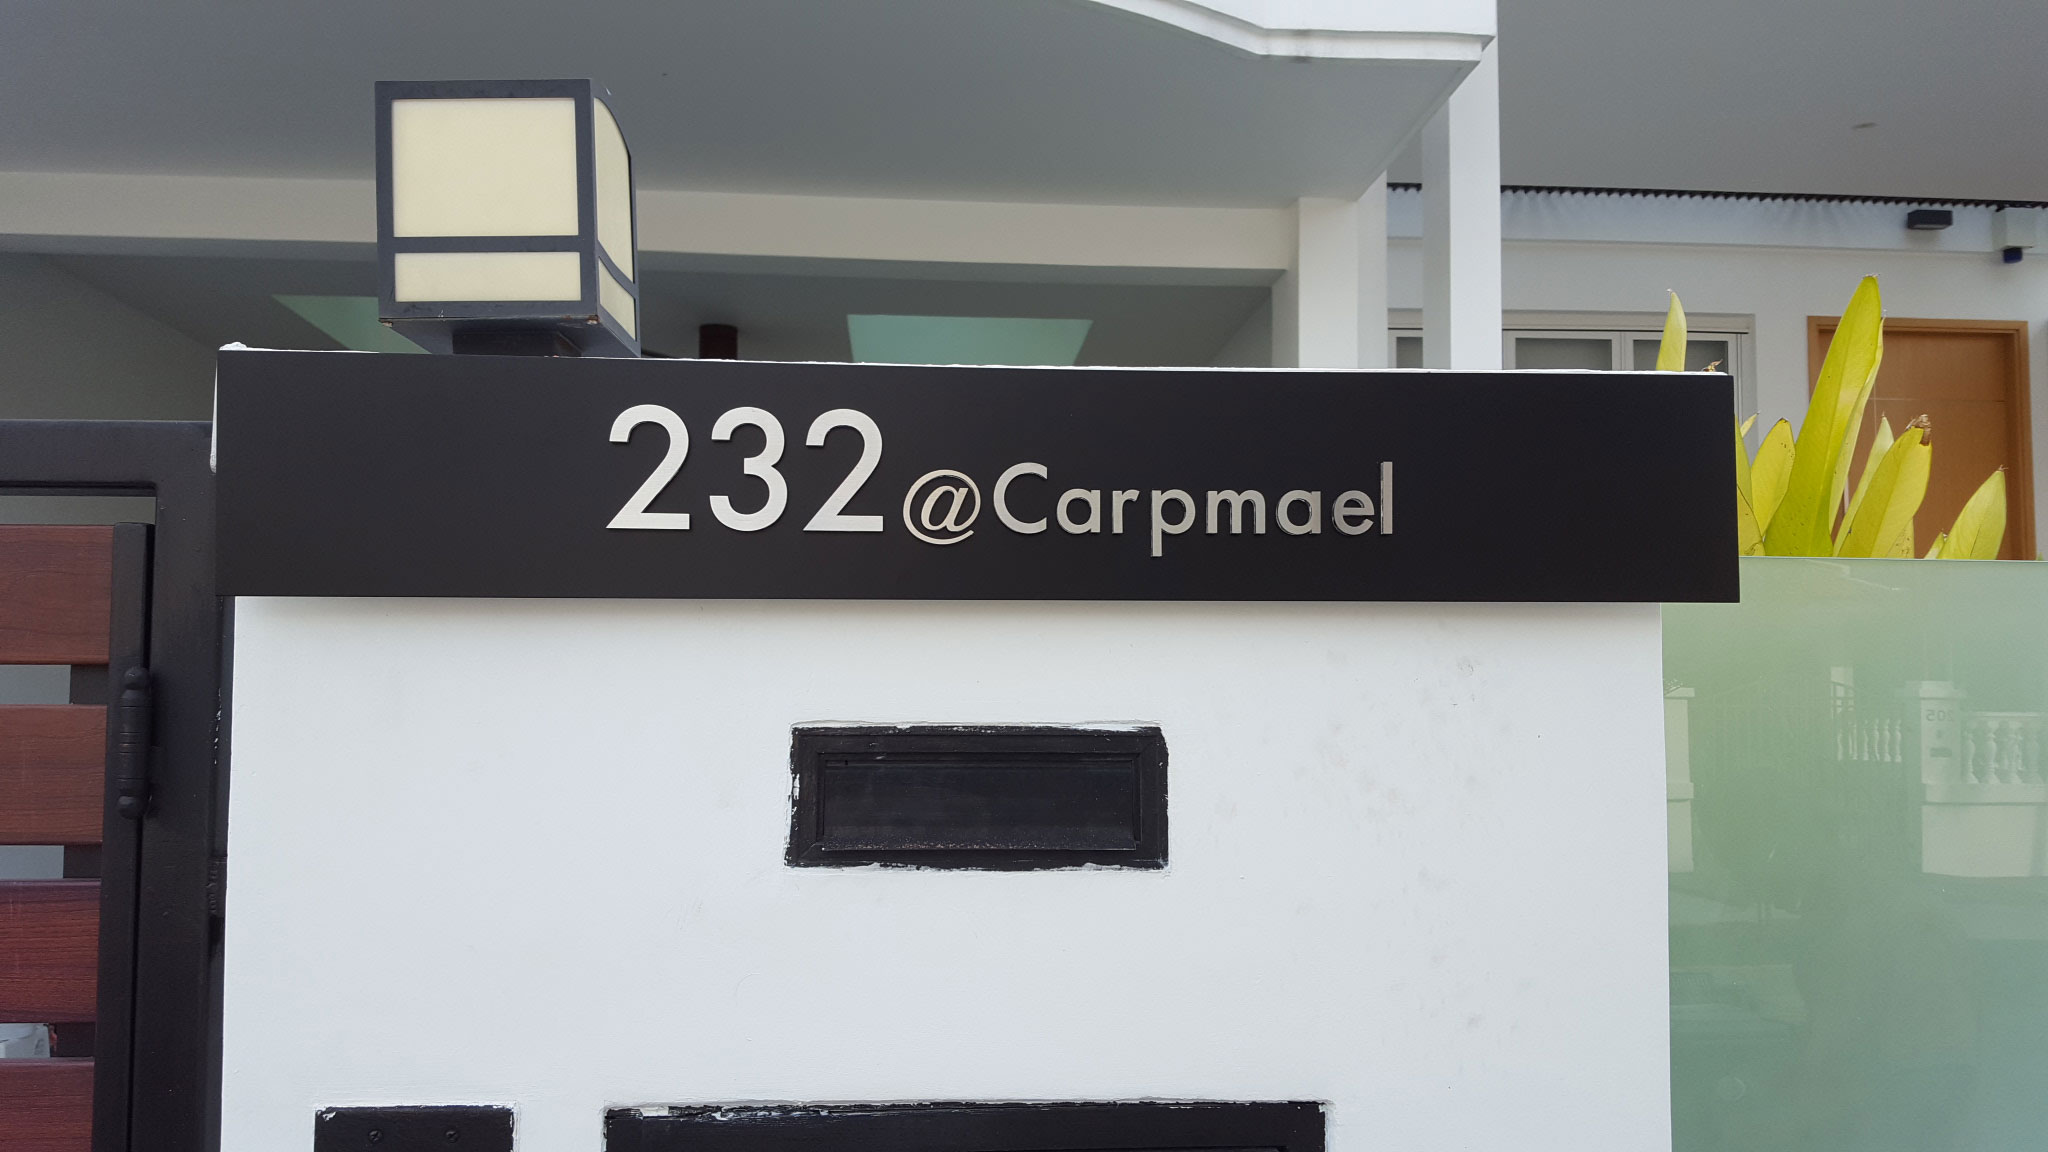 p-232carpmaelroad-1